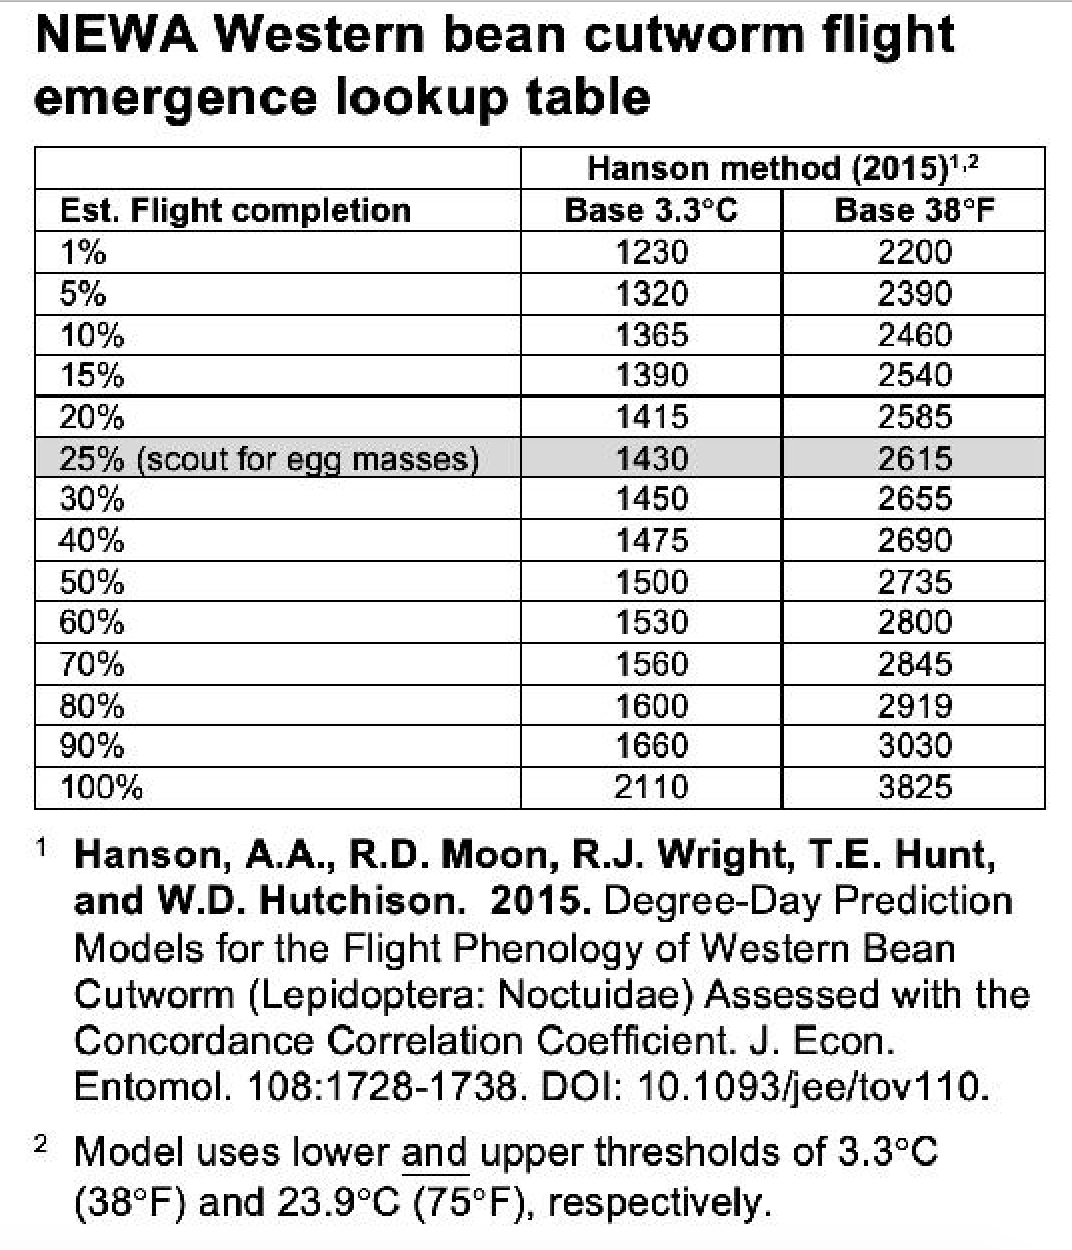 WBC flight emergence table